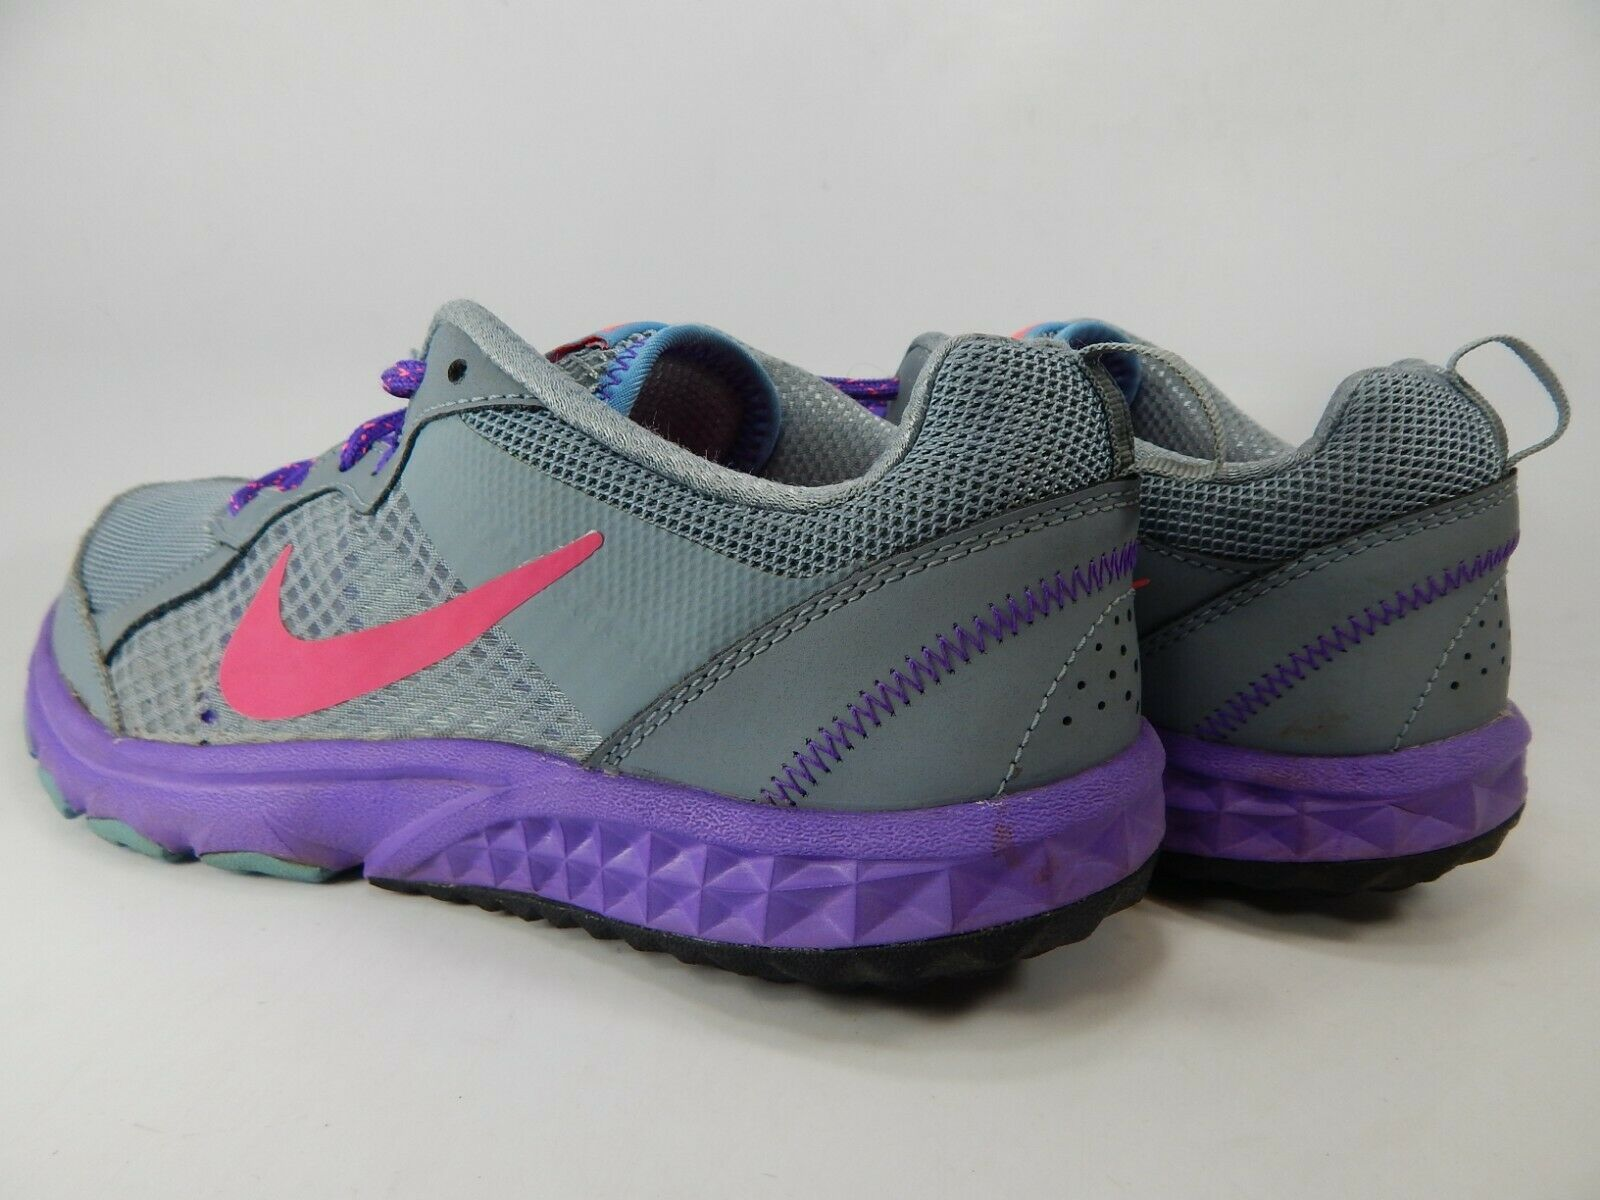 c2d1e1c600a8a Nike Wild Trail Size 9 M (B) EU 40.5 Women s Trail Running Shoes Gray